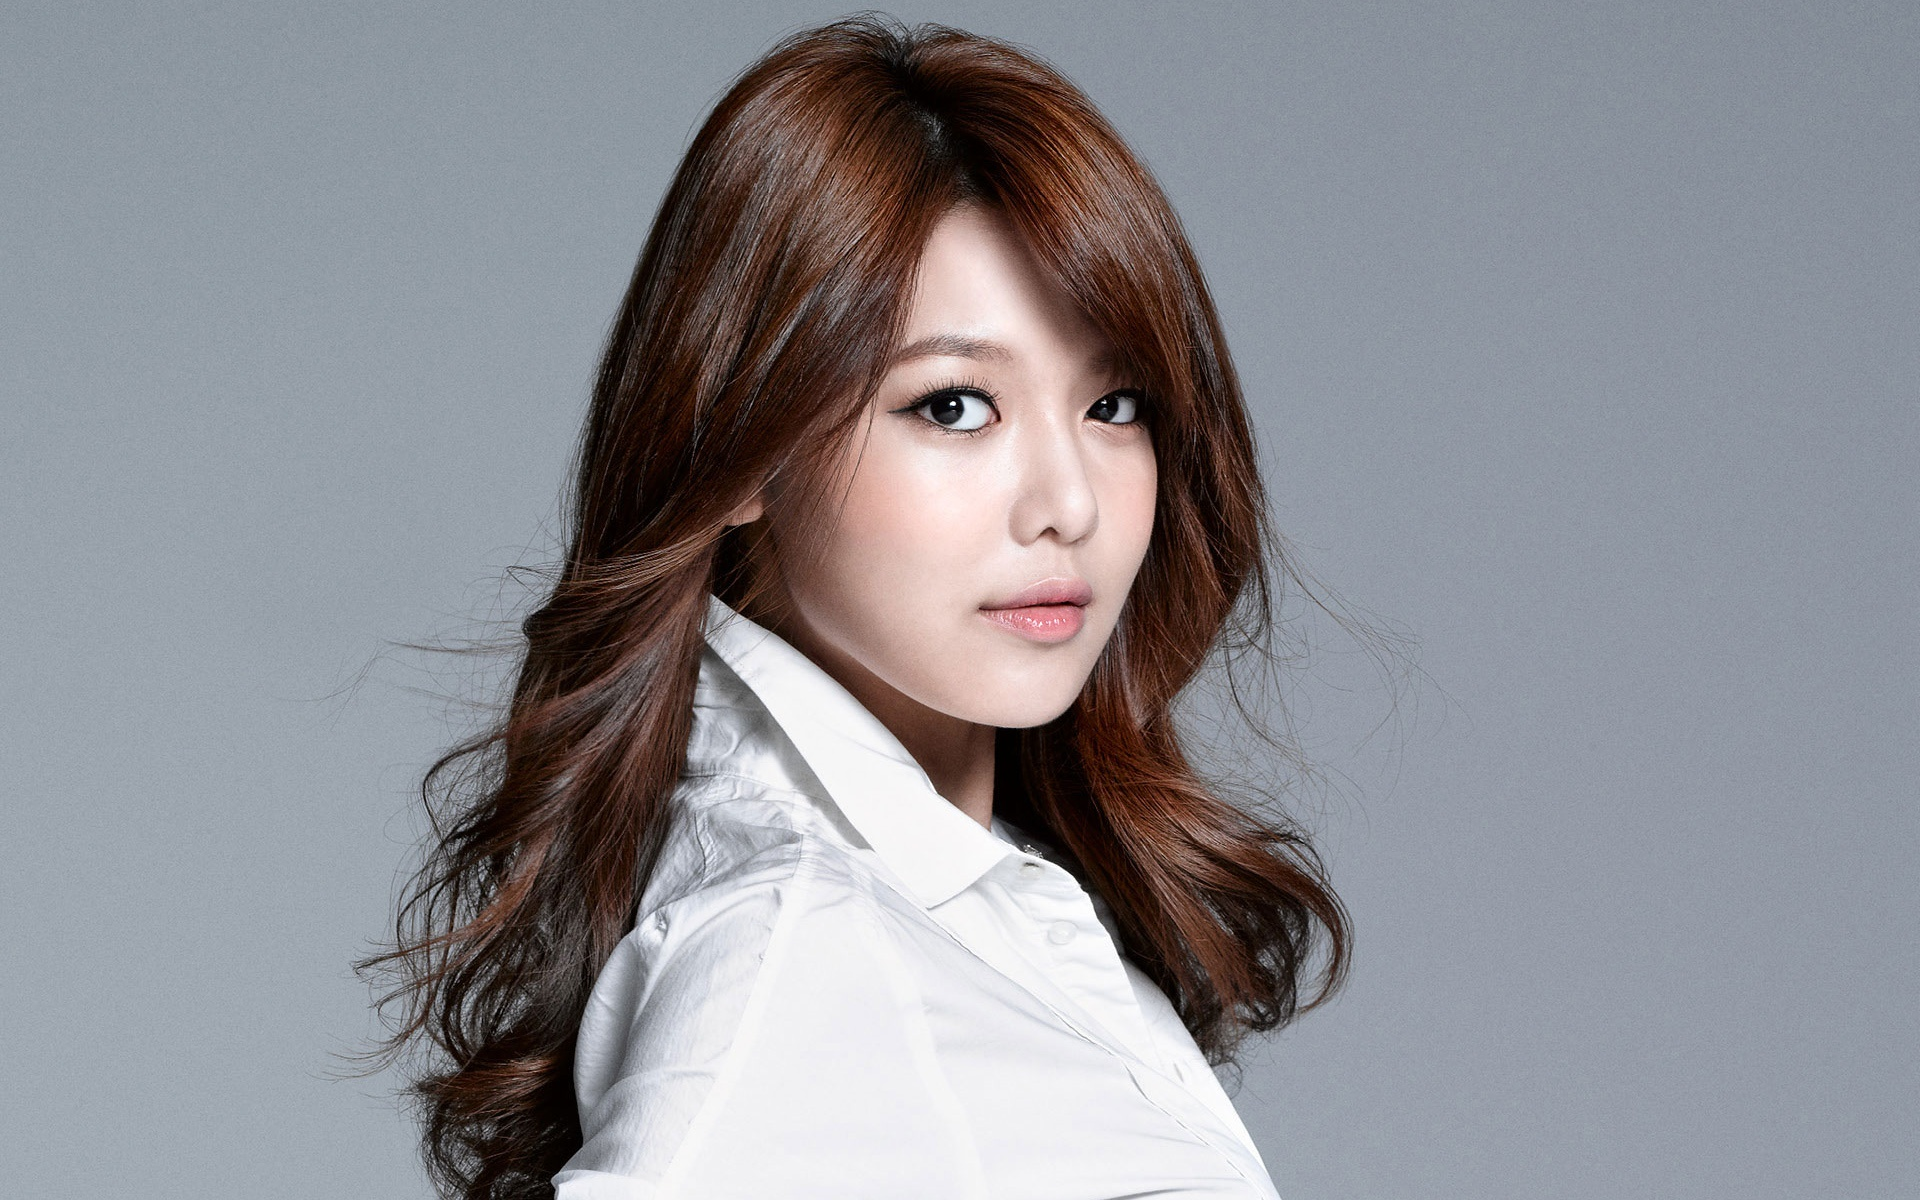 Wallpaper Girls Generation Sooyoung 1920x1200 Hd Picture Image